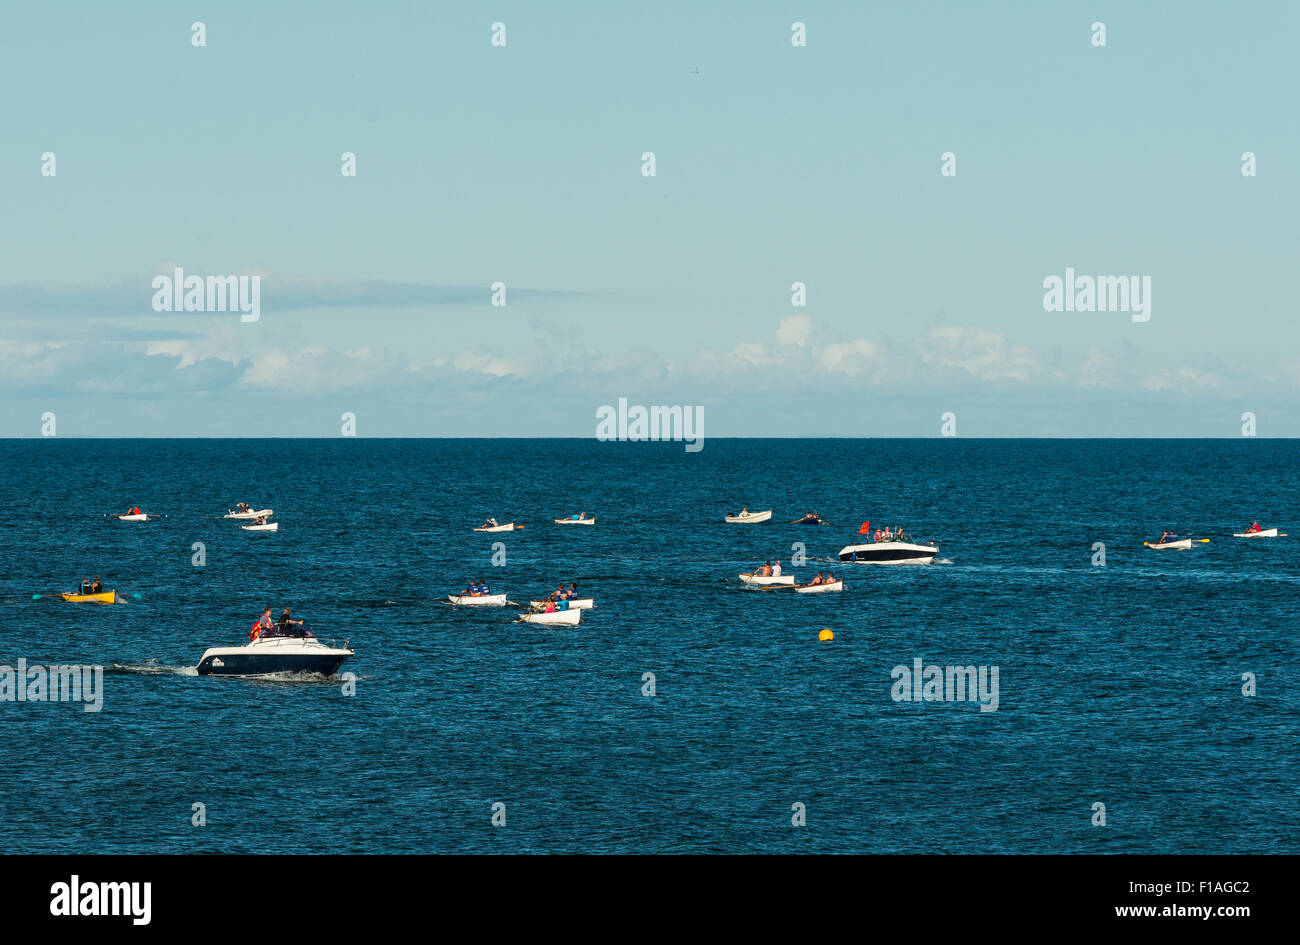 Teignmouth. 2015. A small boat race off the coast of Teignmouth during the summer regatta season. - Stock Image